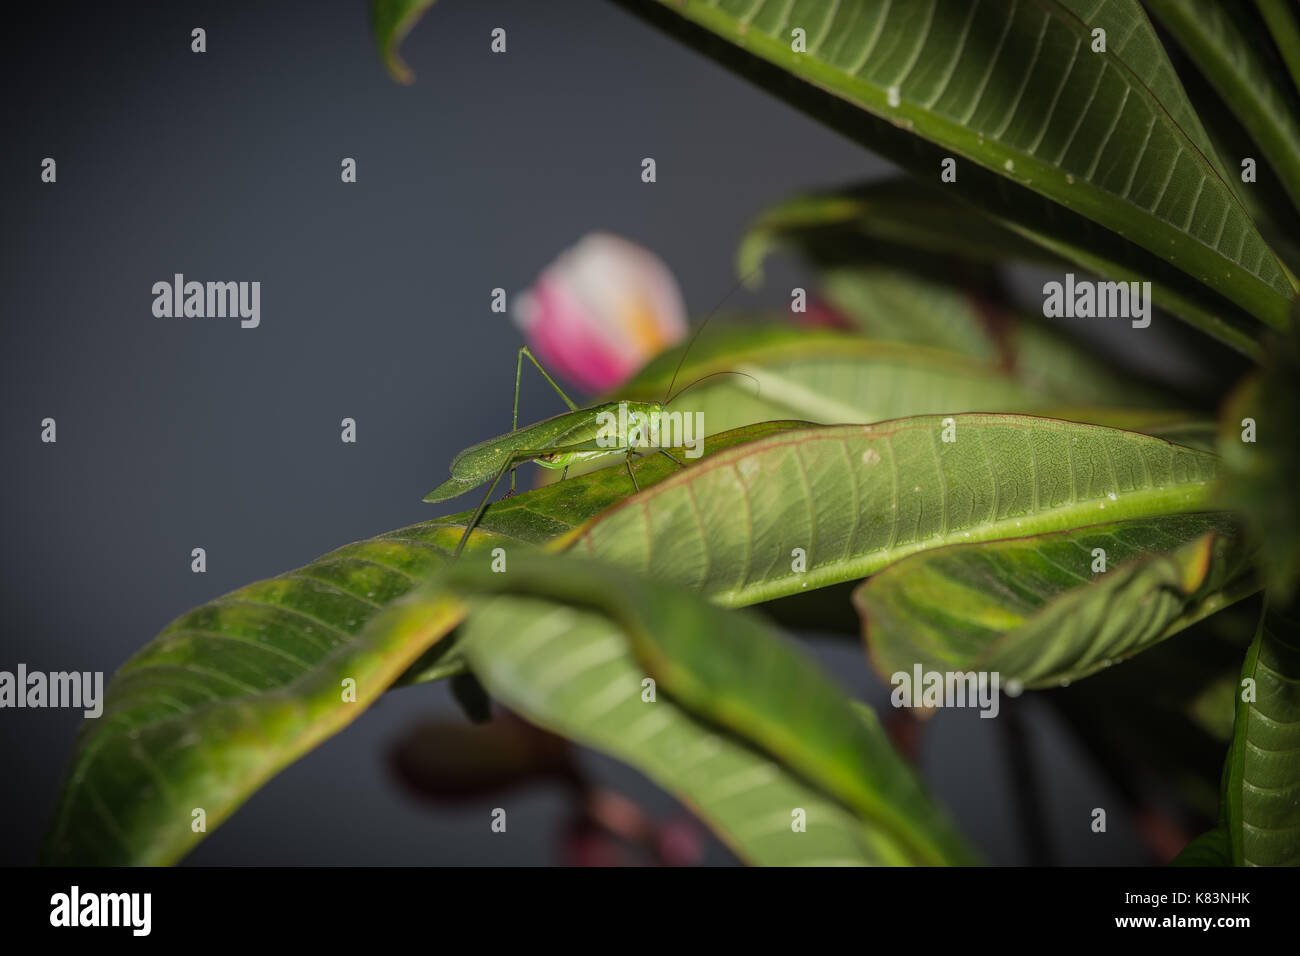 fork tailed katydid (Scudderia cuneate) - Stock Image